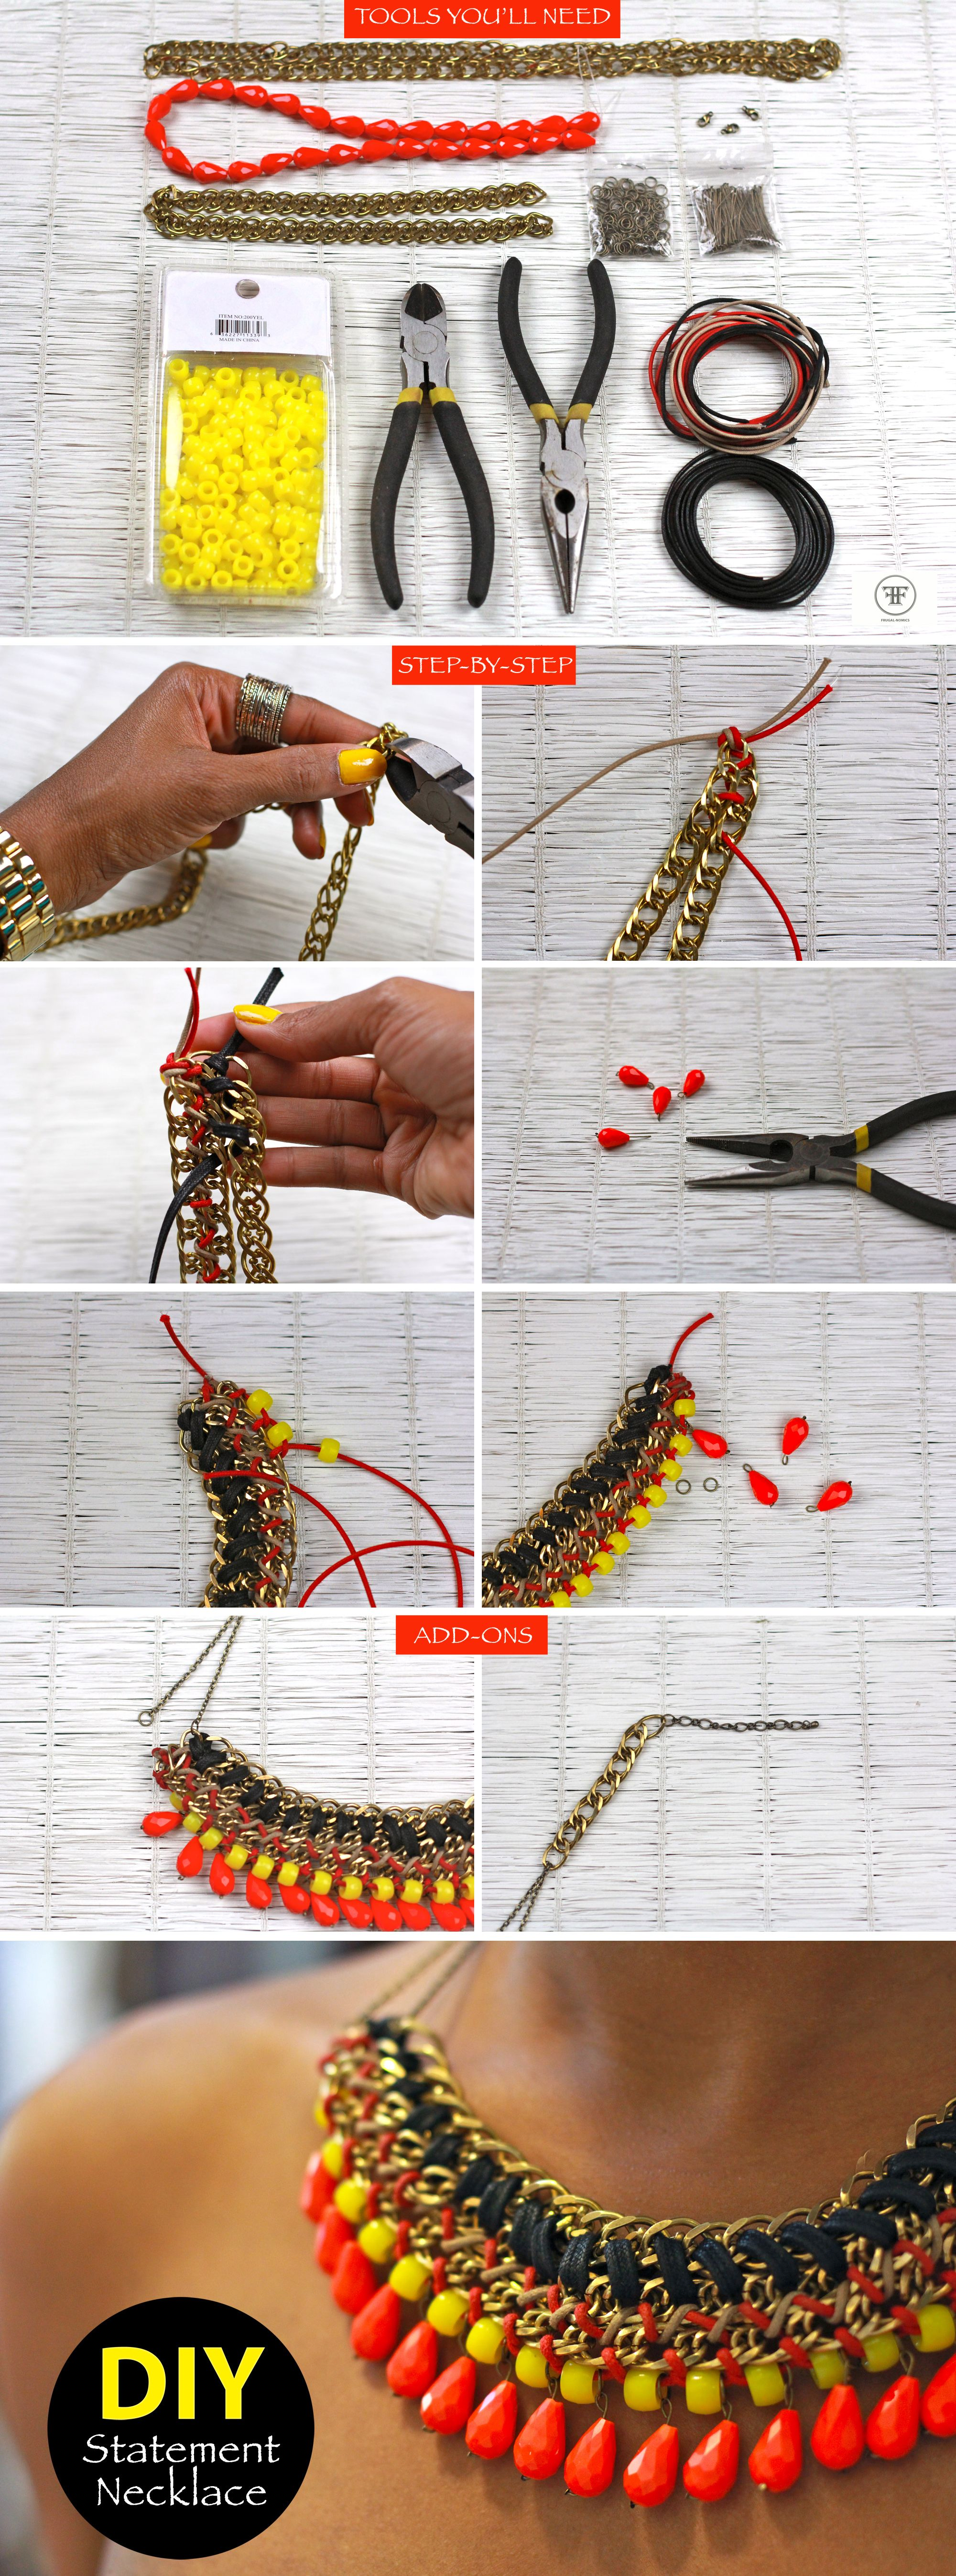 Creative Handmade Diy Statement Necklace Craft Jewelry Fashion Free D Y I Project Information